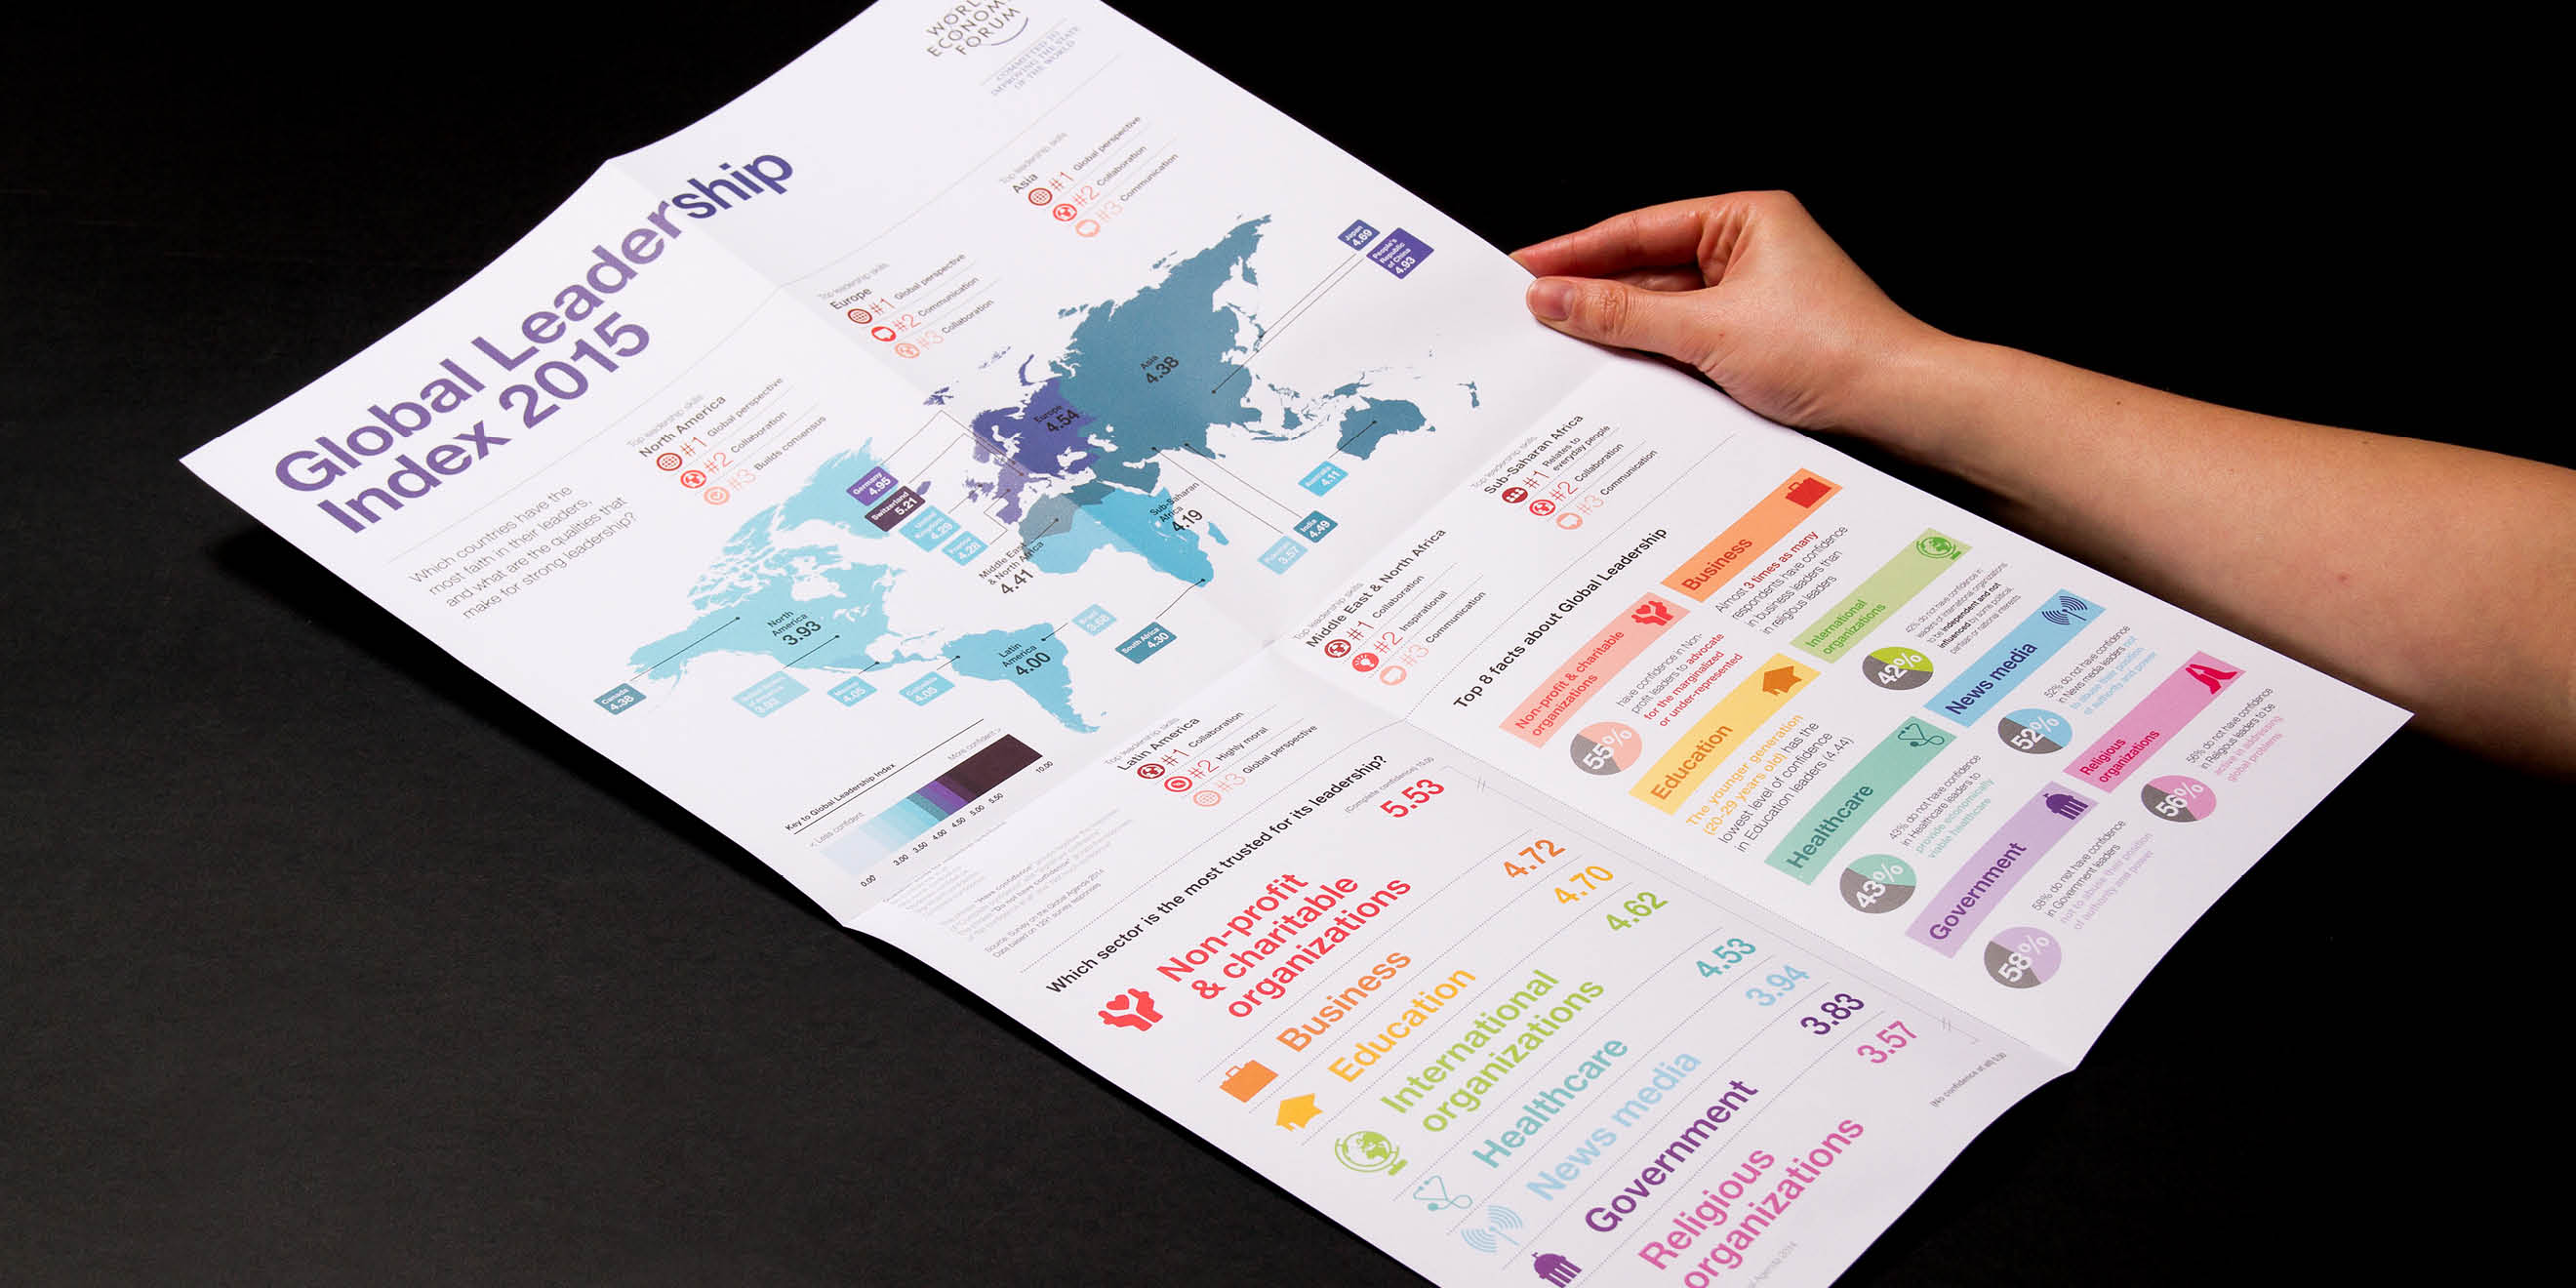 Global Leadership Index foldout from the World Economic Forum: Outlook on the Global Agenda 2015 report